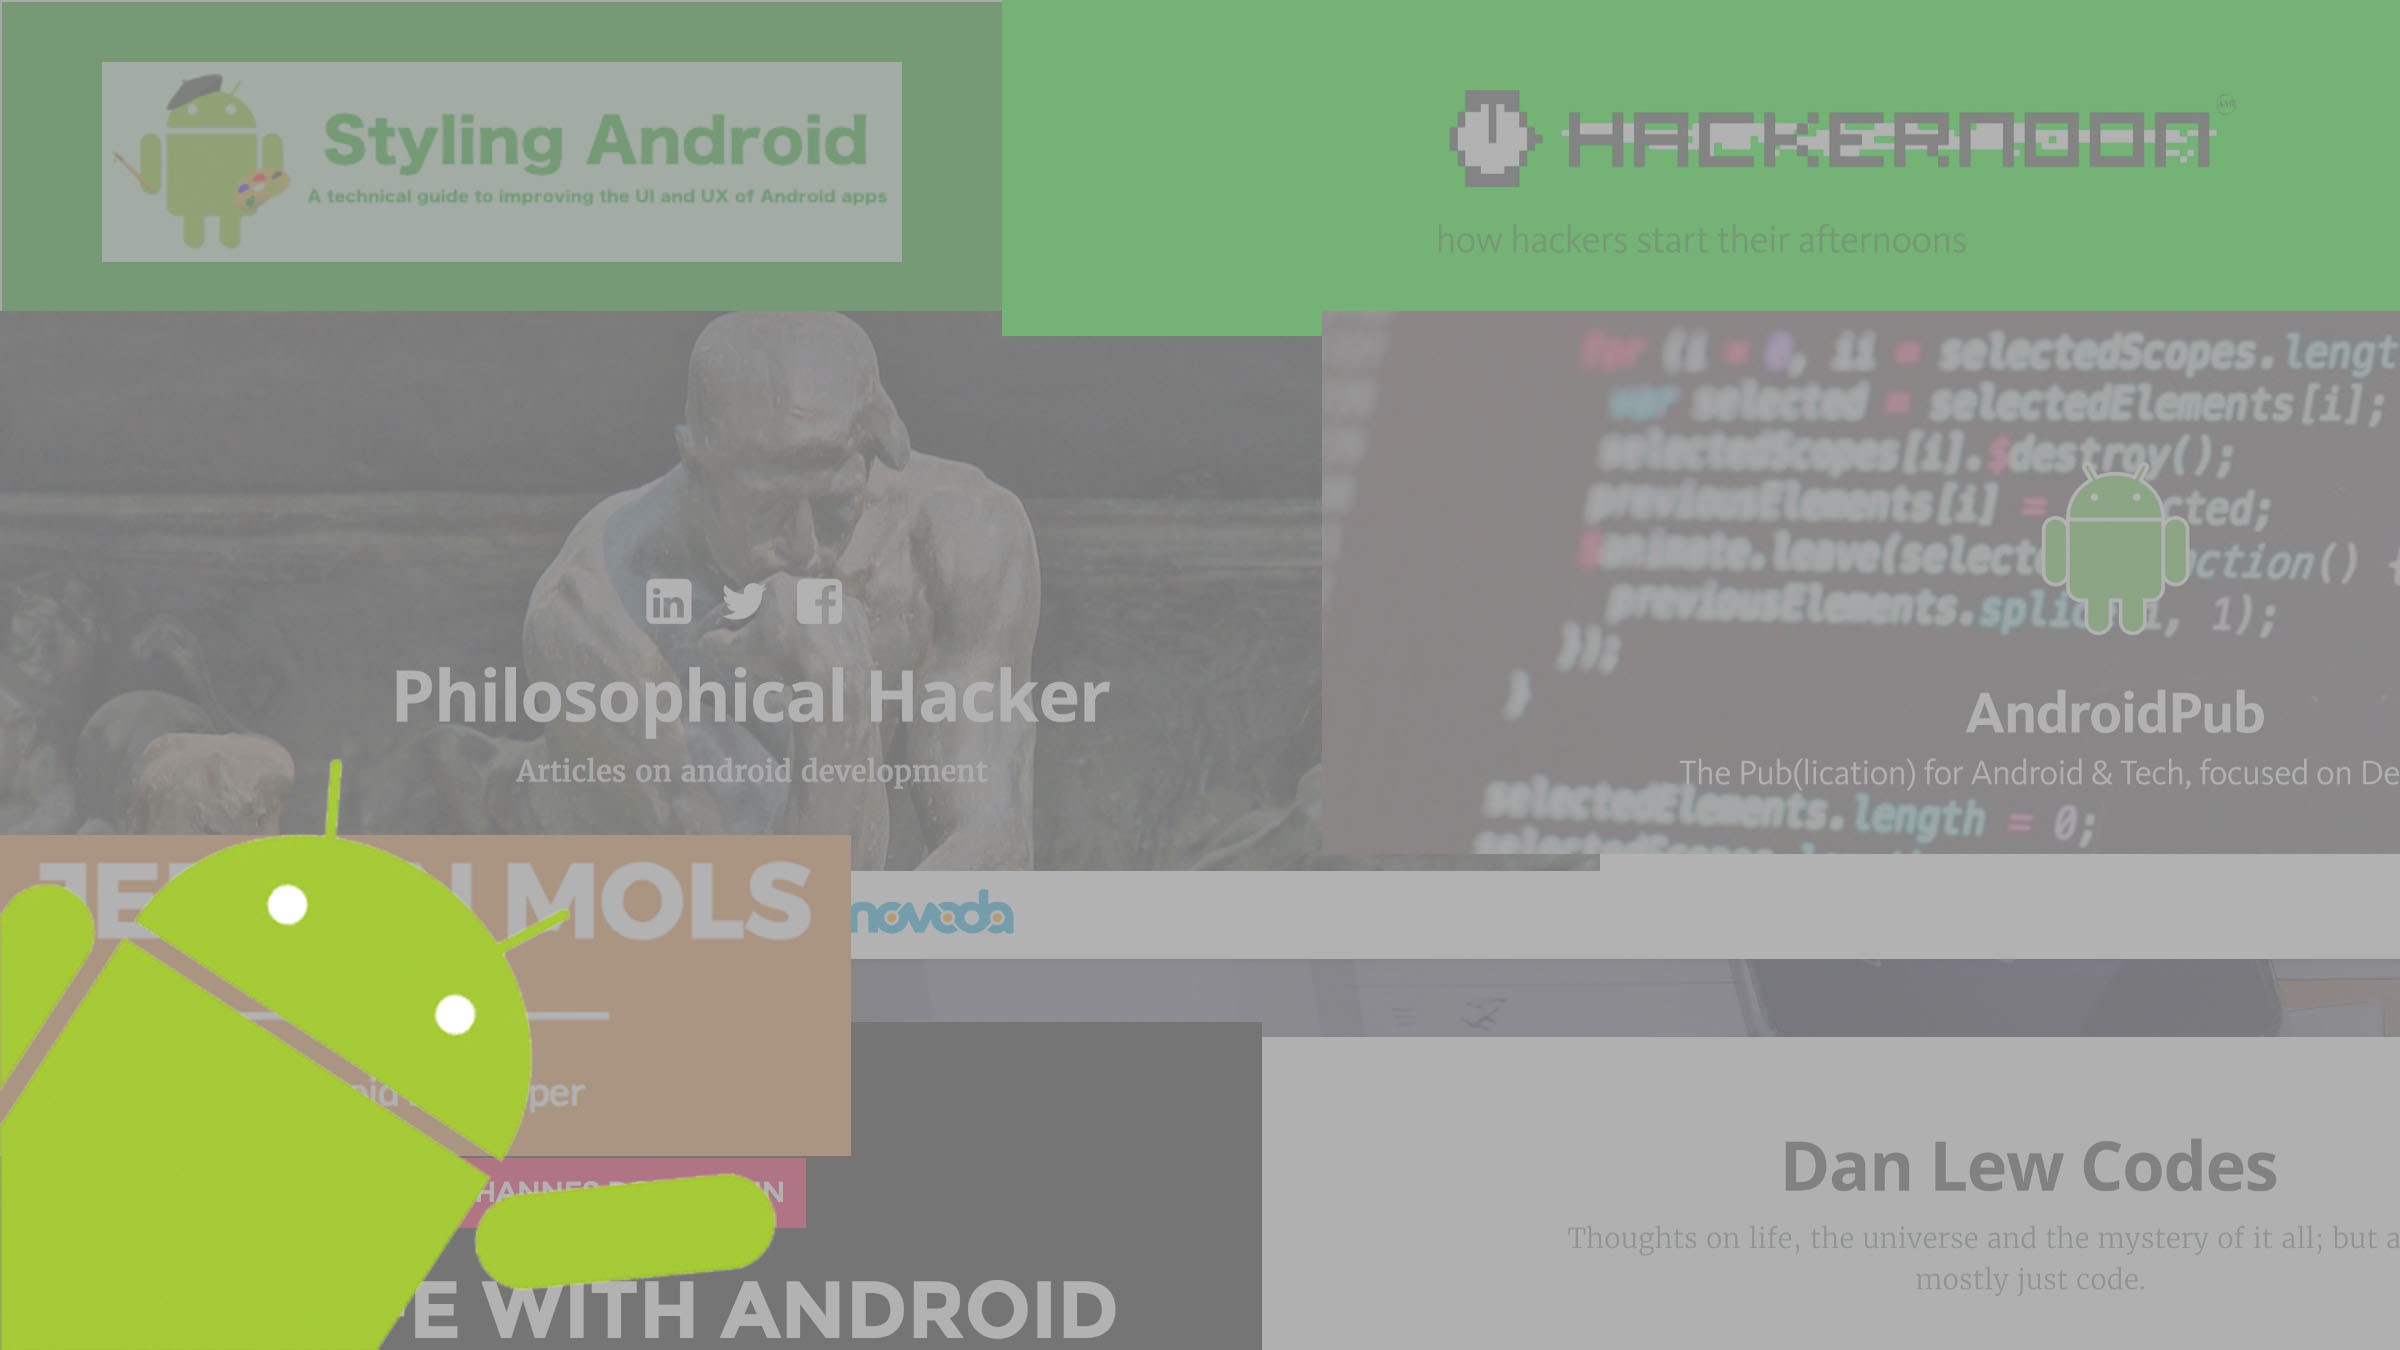 12 Android blogs you should be following - Jordan Jozwiak